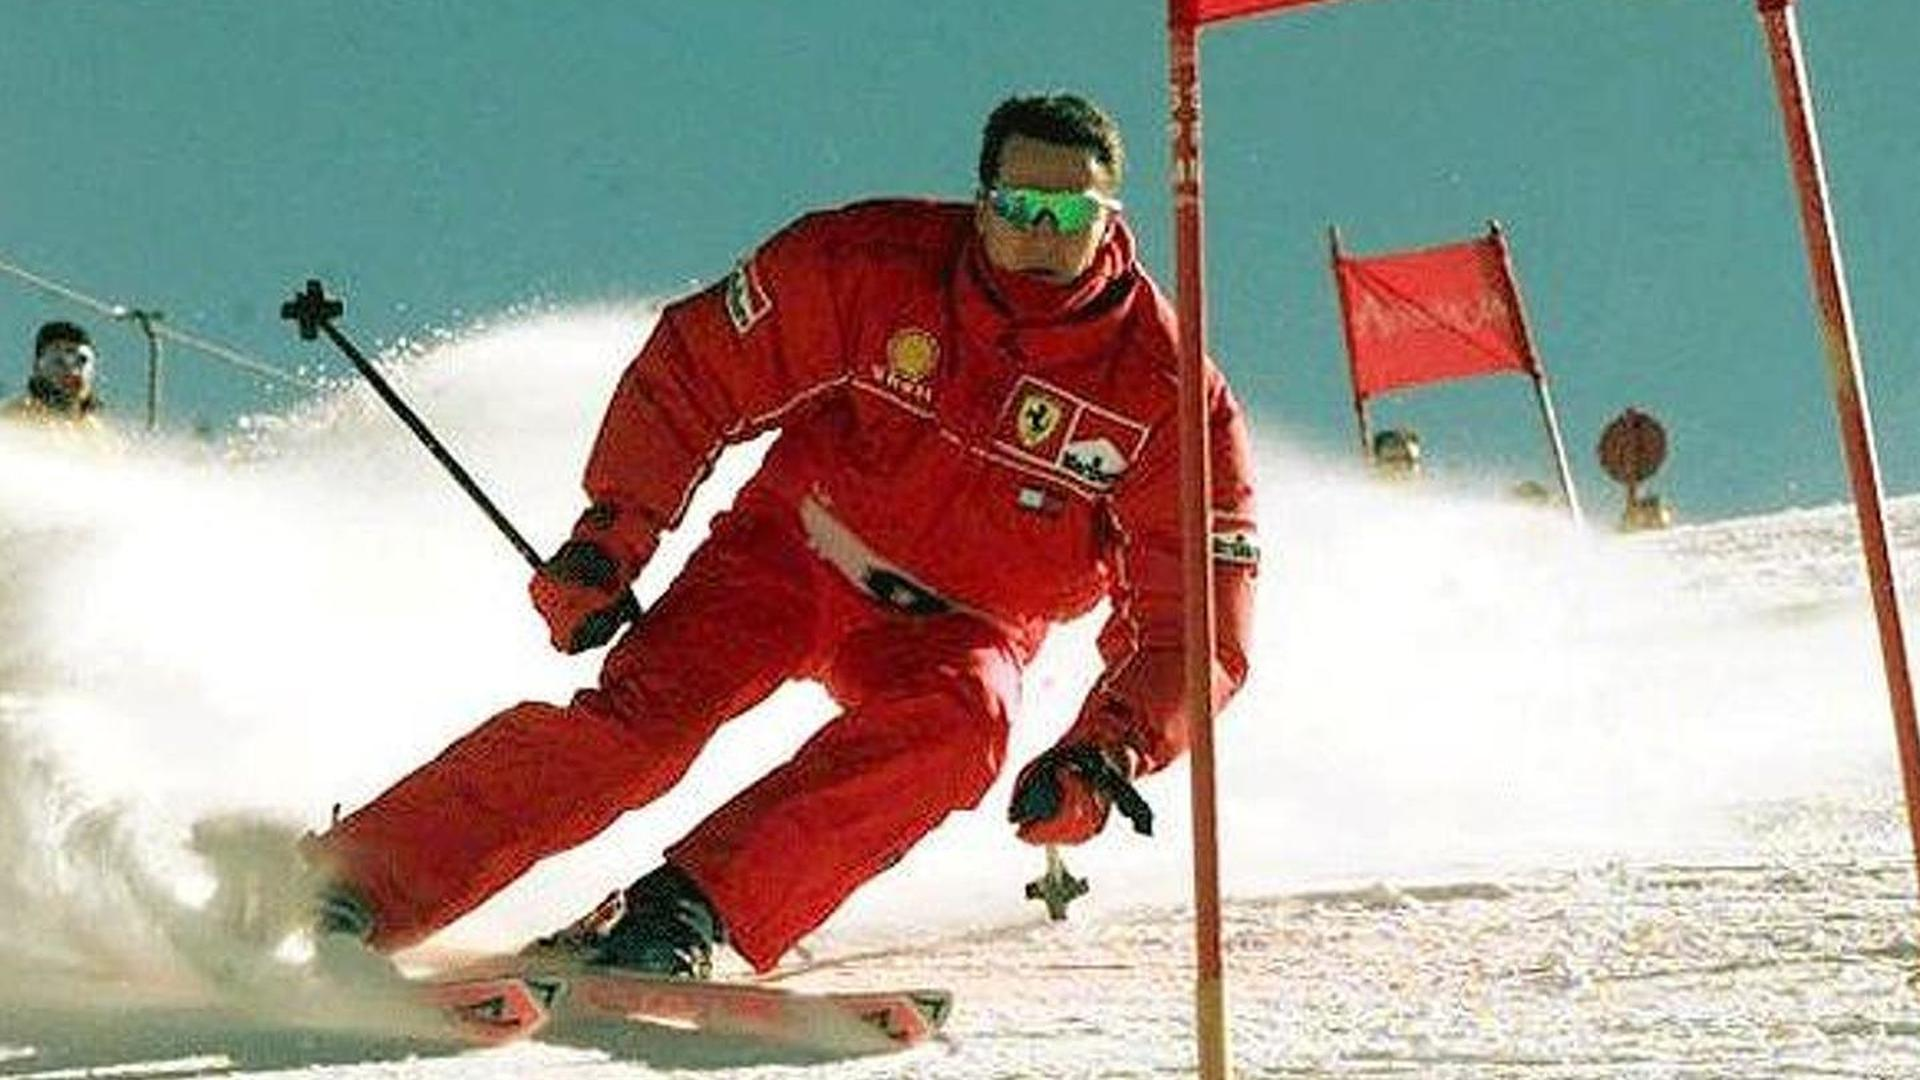 Michael Schumacher has sustained head injuries after serious skiing accident in France